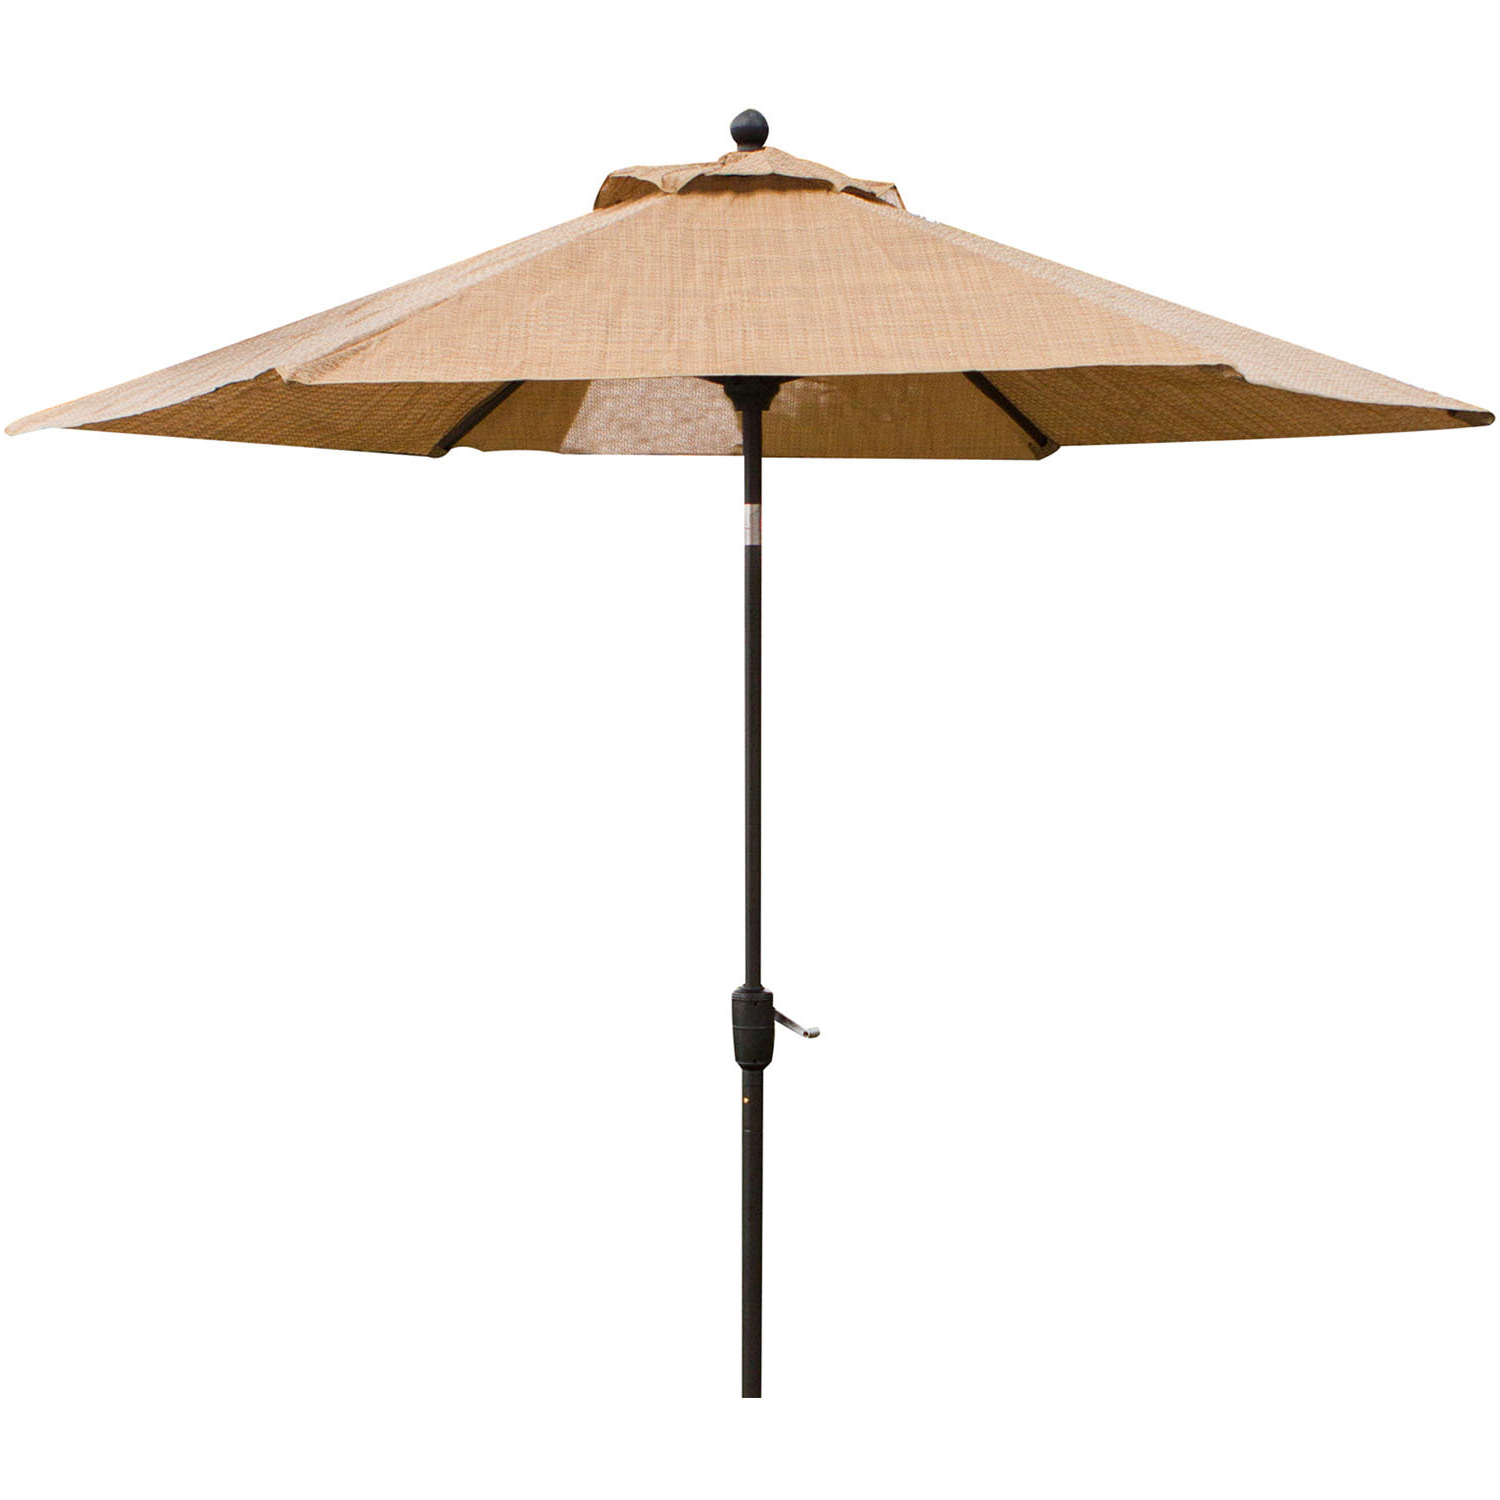 Stiefel 9' Market Umbrella In Famous Hapeville Market Umbrellas (View 6 of 20)